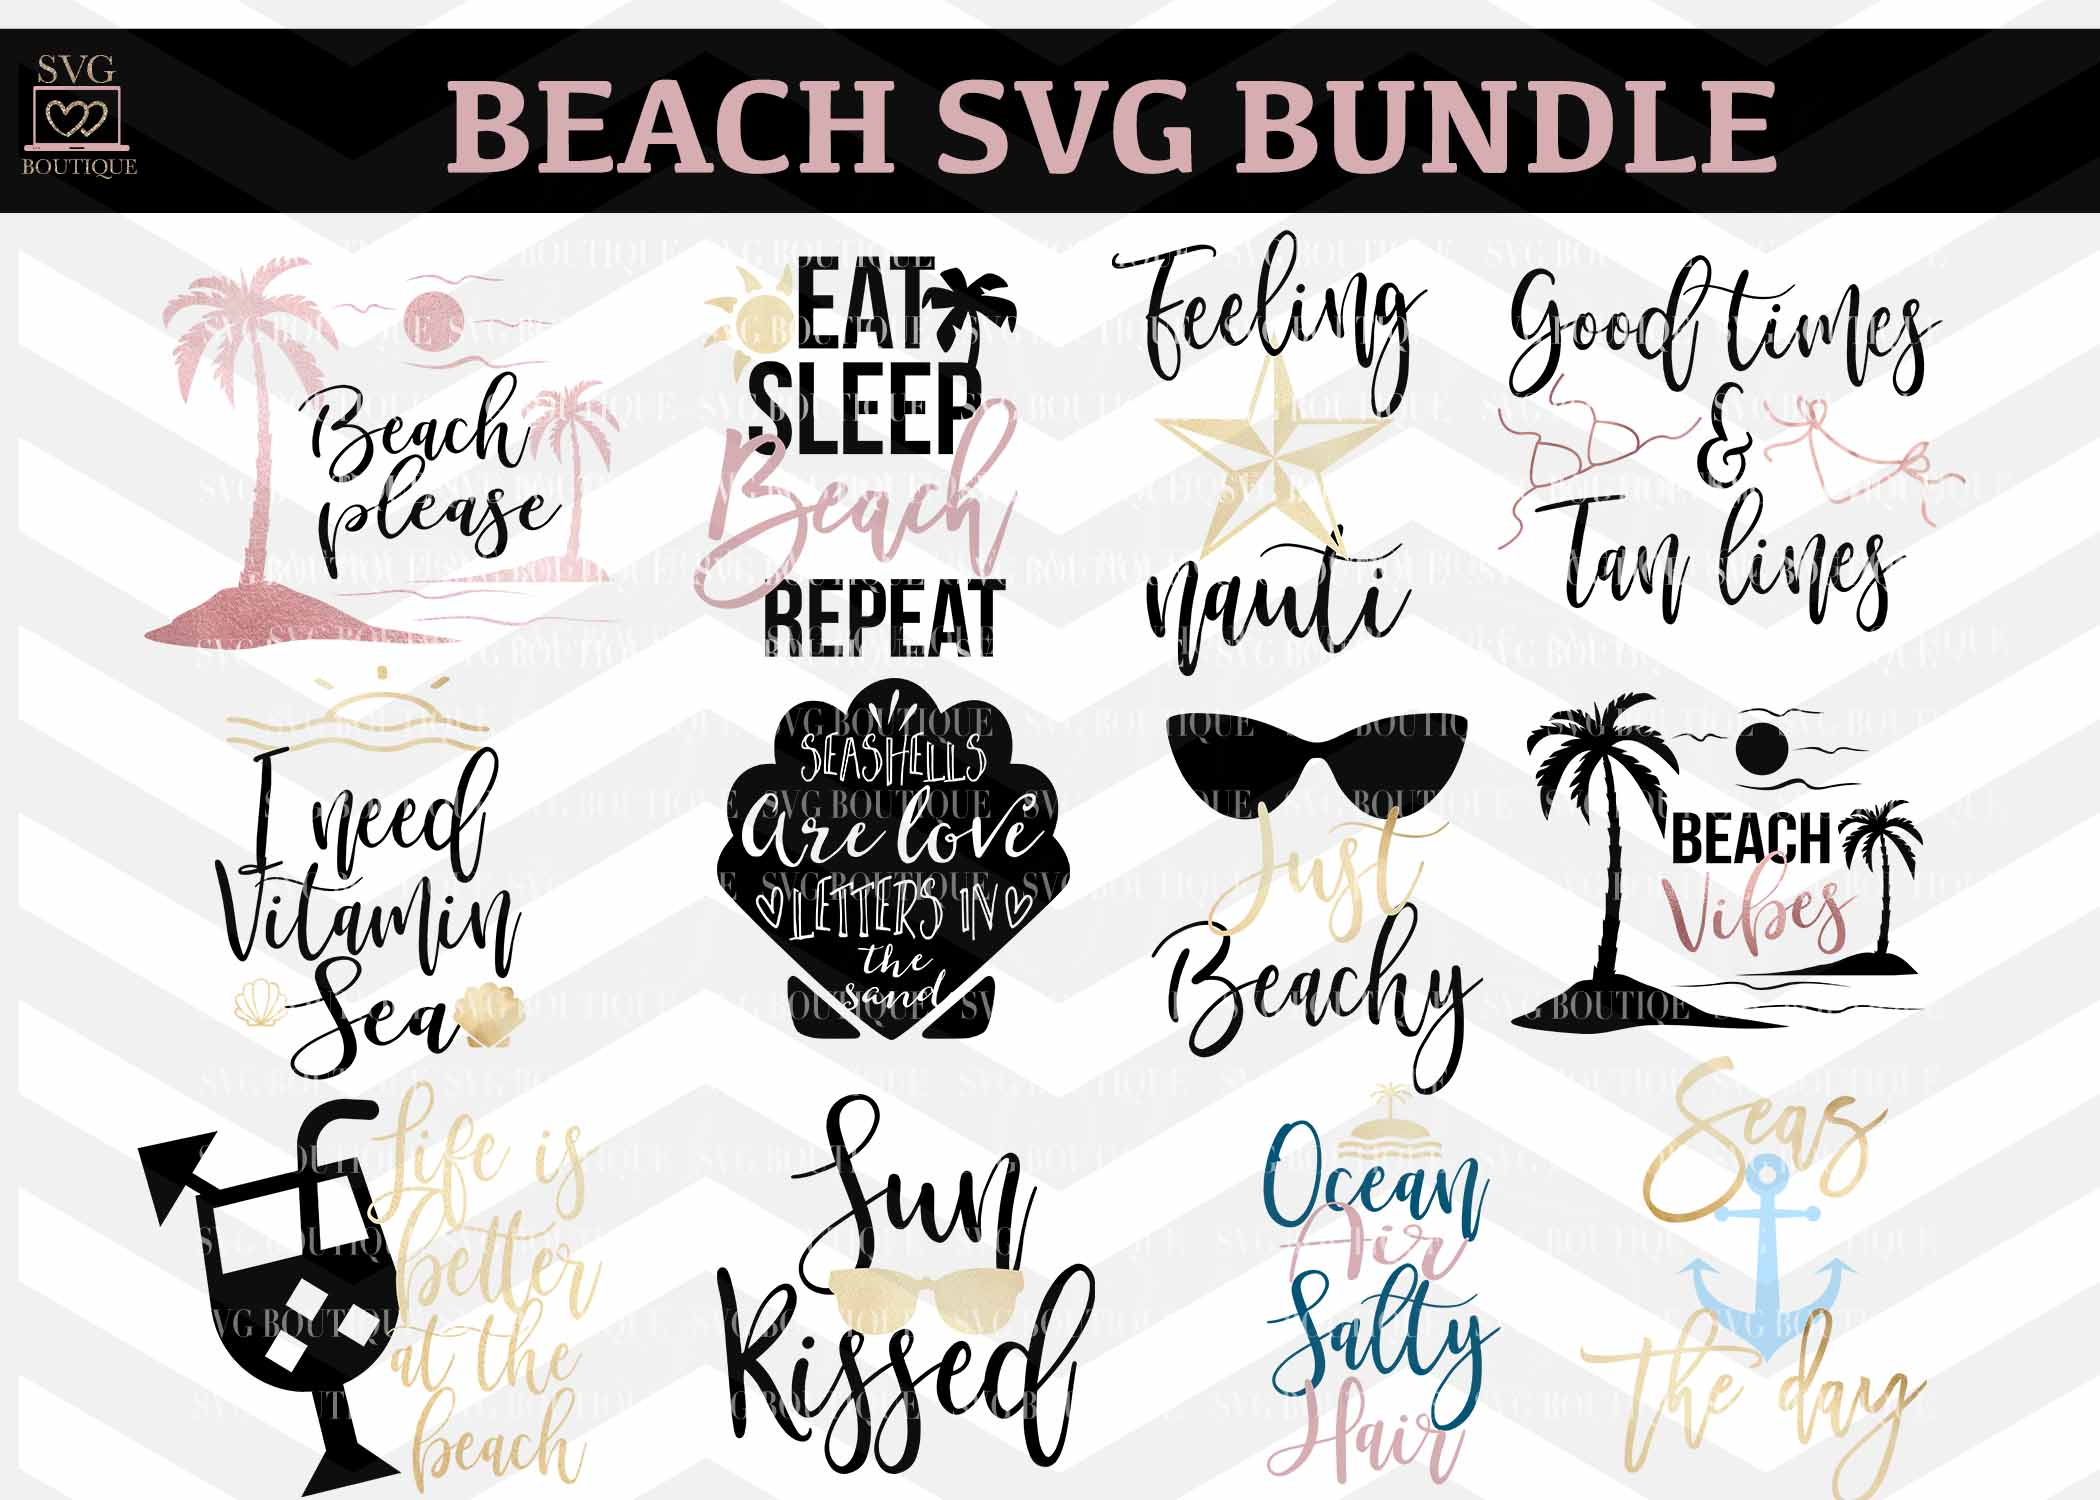 Beach Vacation Design Bundle - SVG PNG DFX Cutting Files example image 1